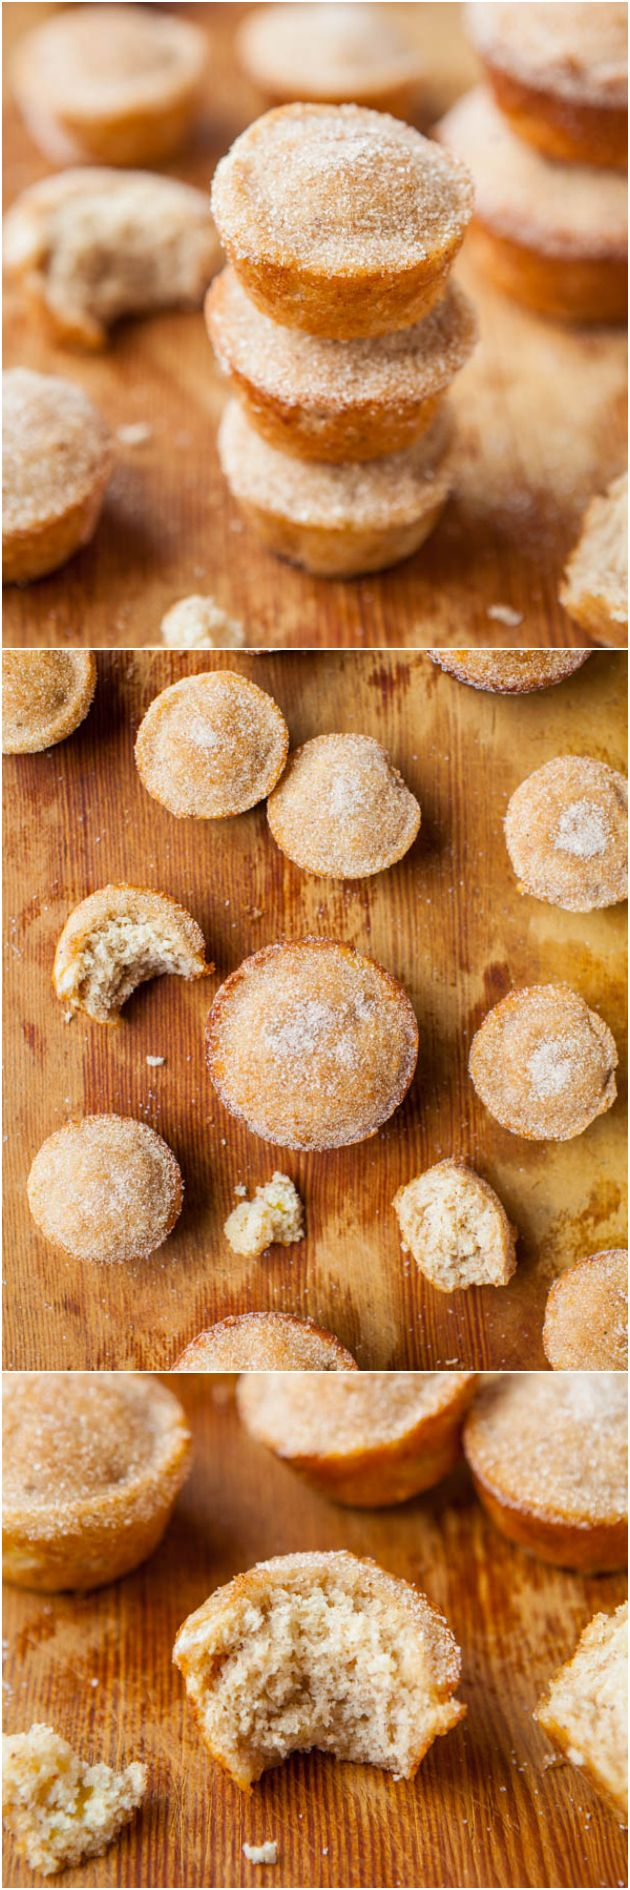 Fluffy Vegan Coconut Oil Banana Muffins – Soft  fluffy healthier muffins that you'll never believe are made without eggs or